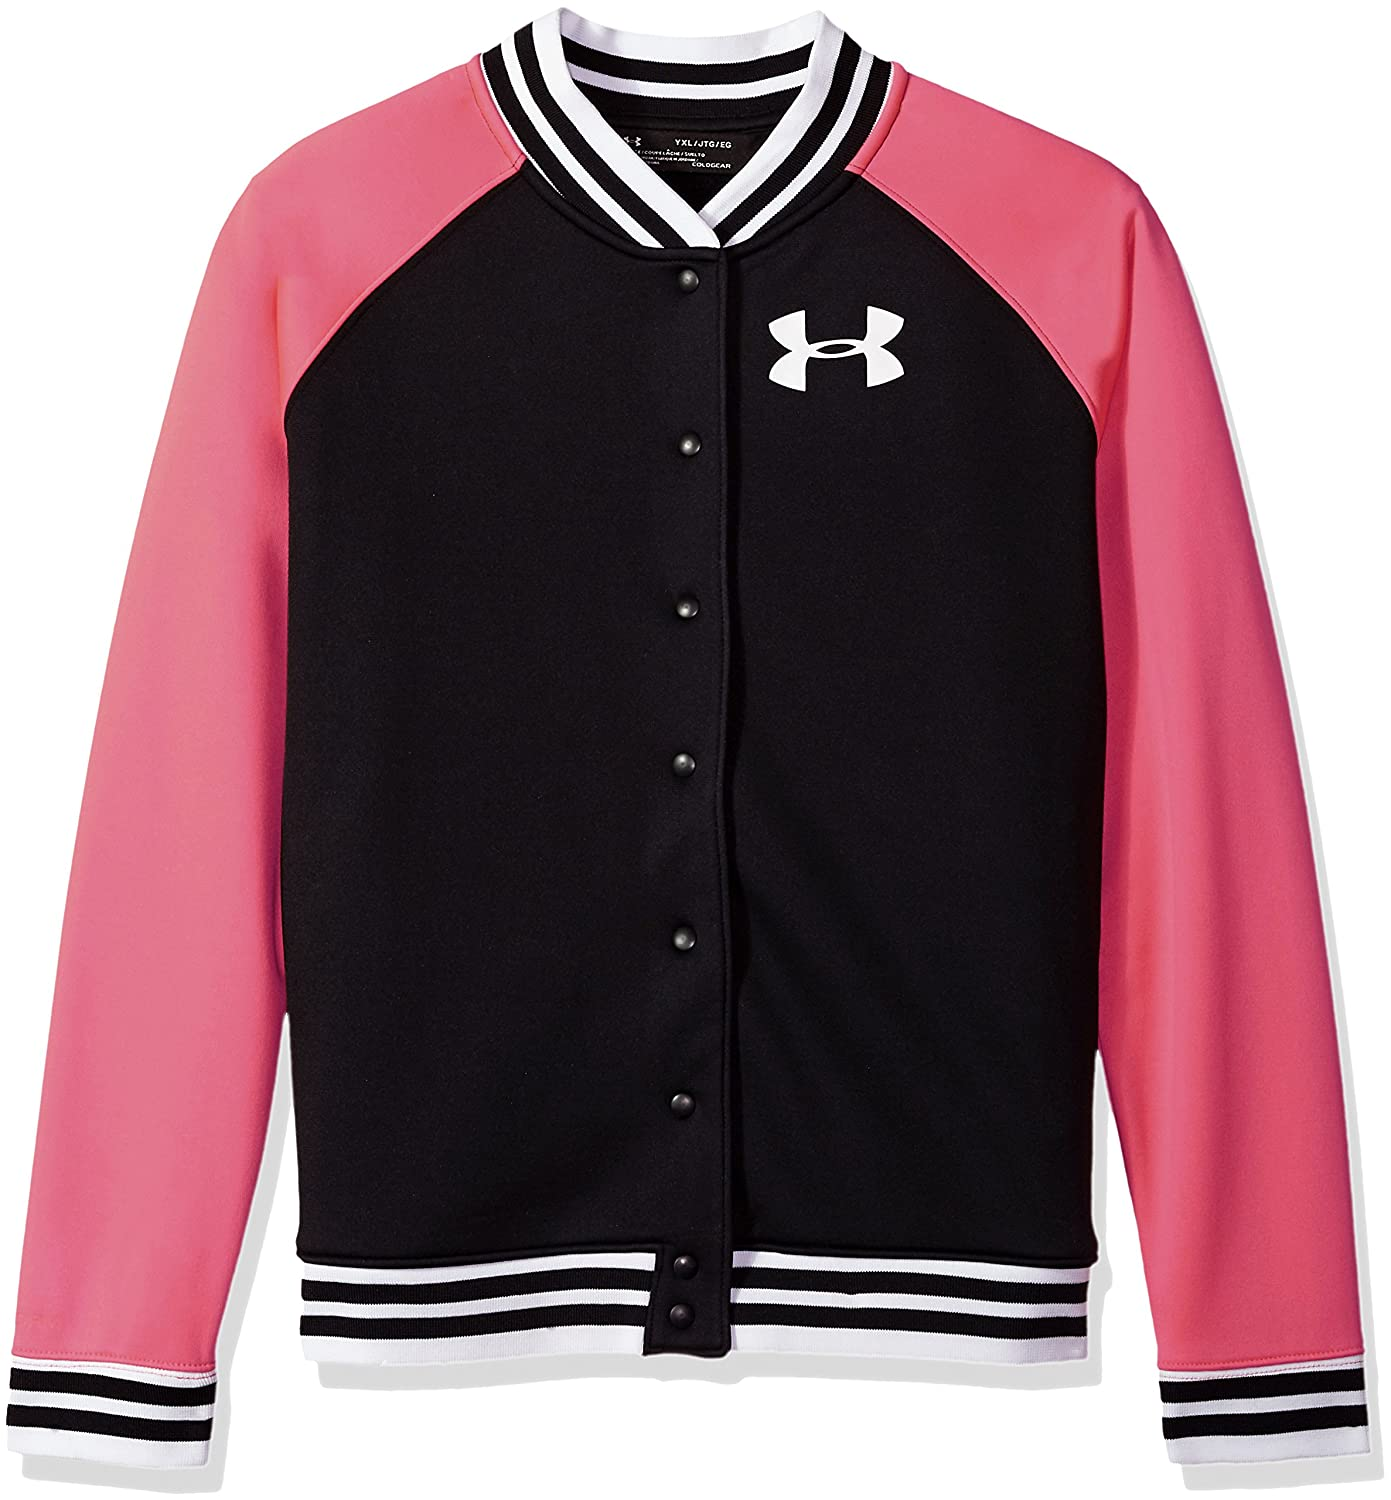 Under Armour Girls' Armour Fleece Graphic Bomber Under Armour Apparel 1298862